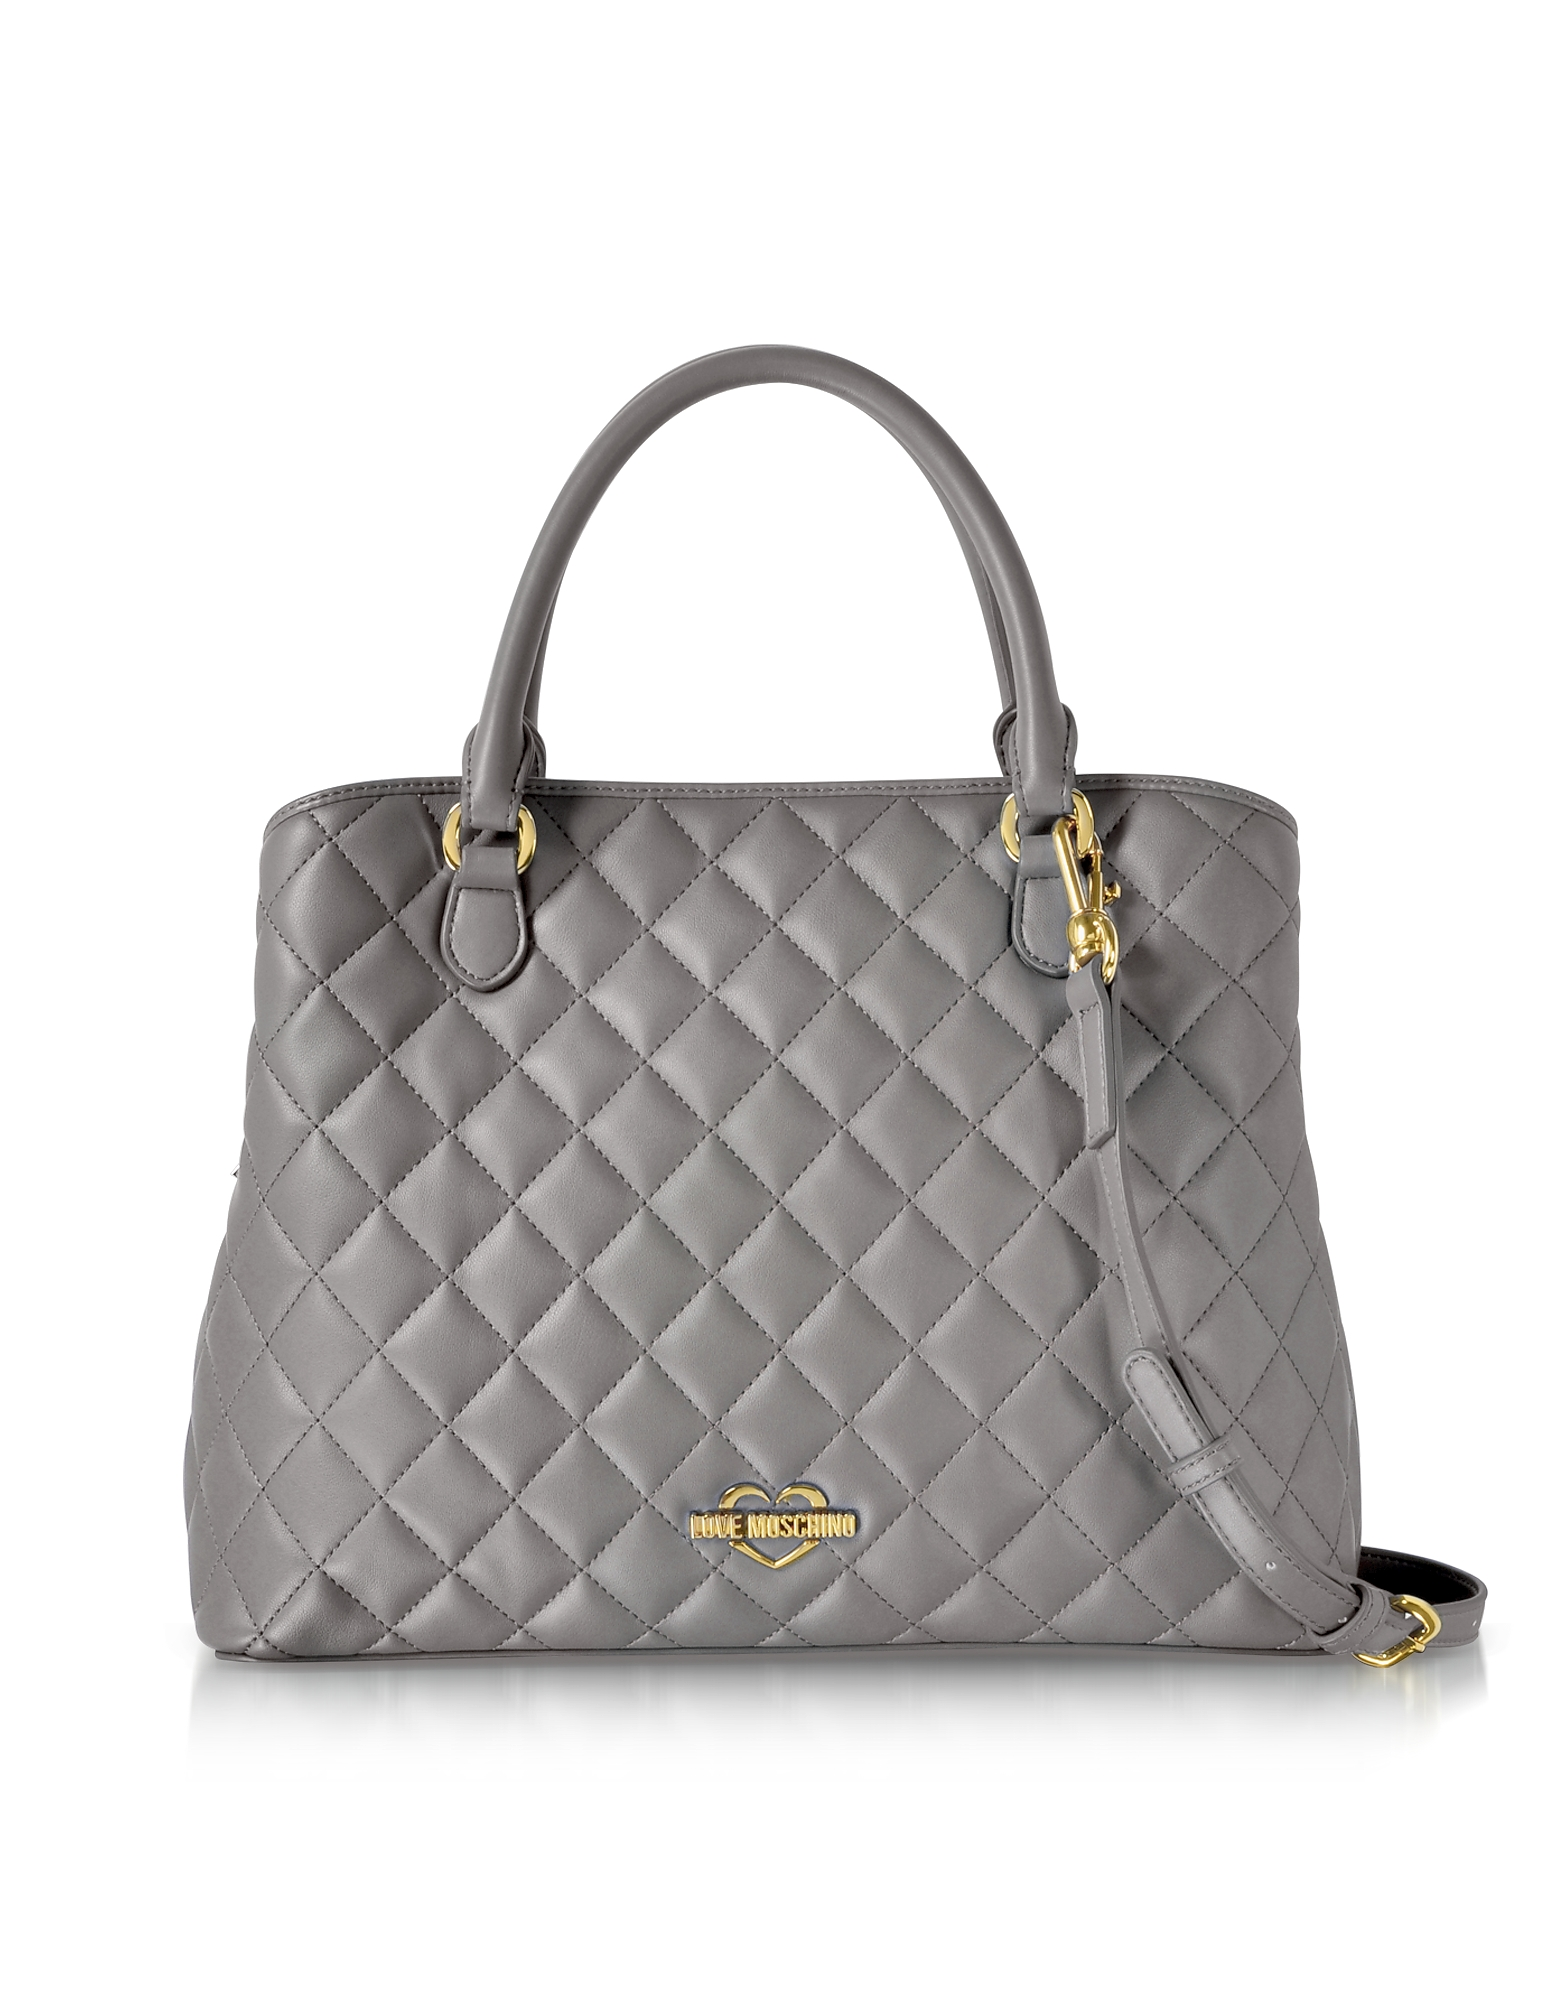 Love Moschino Handbags, Grey Superquilted Eco-Leather Satchel Bag